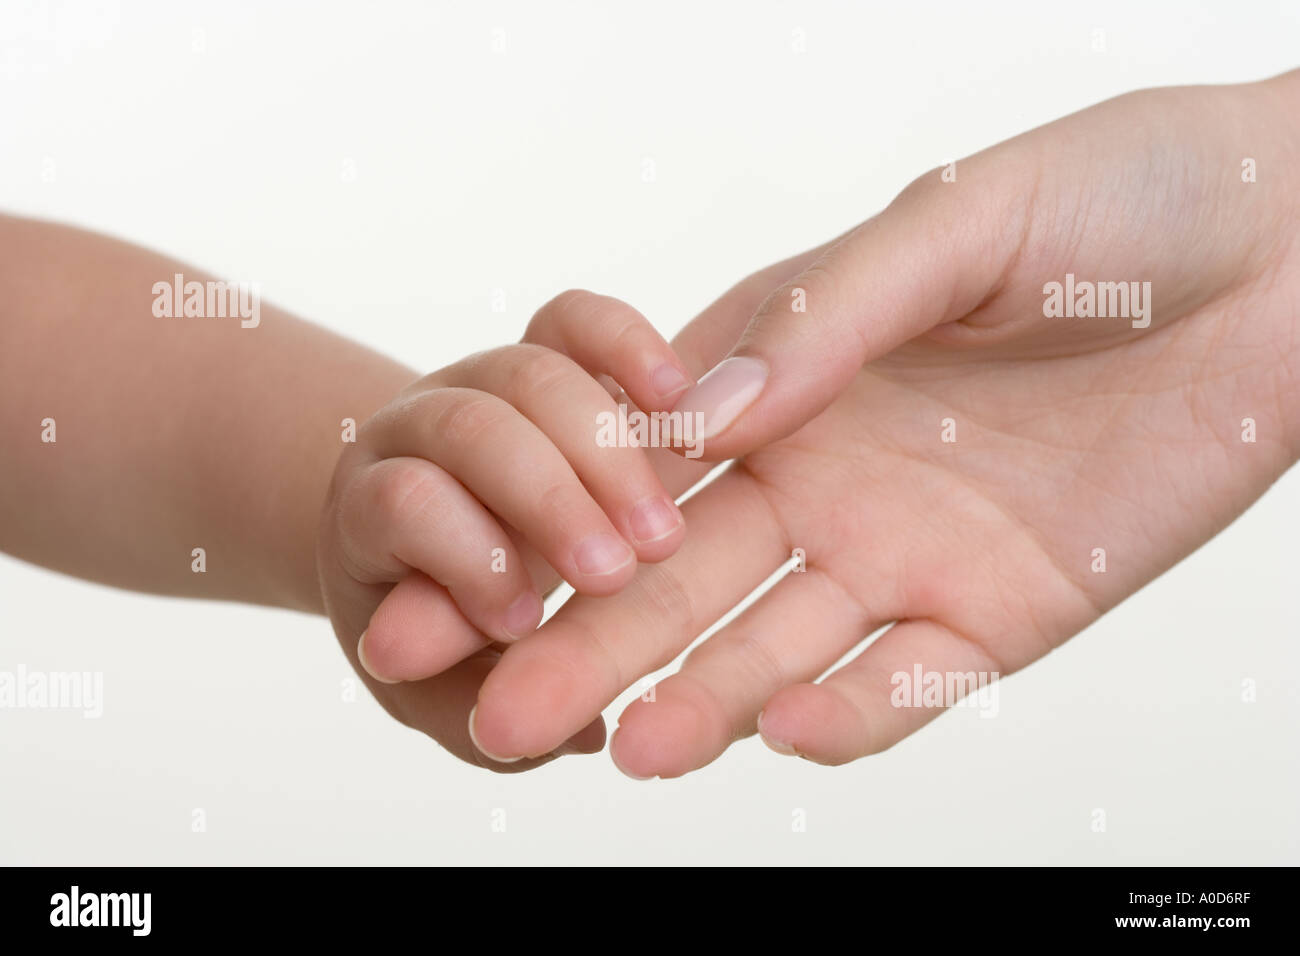 Baby holding hands with mother - Stock Image